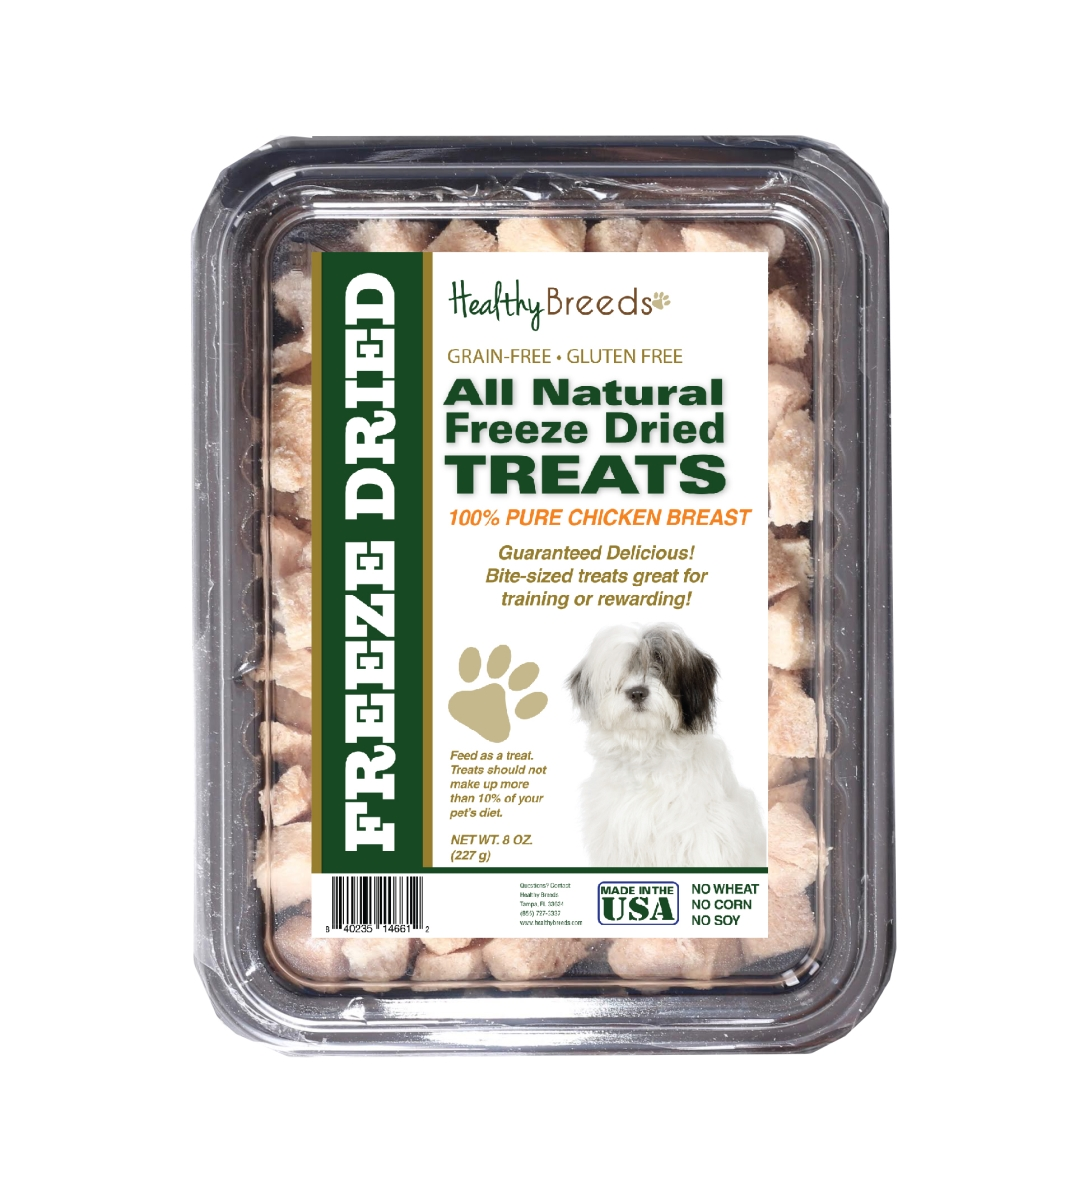 Healthy Breeds 840235146612 8 oz Old English Sheepdog All Natural Freeze Dried Treats Chicken Breast